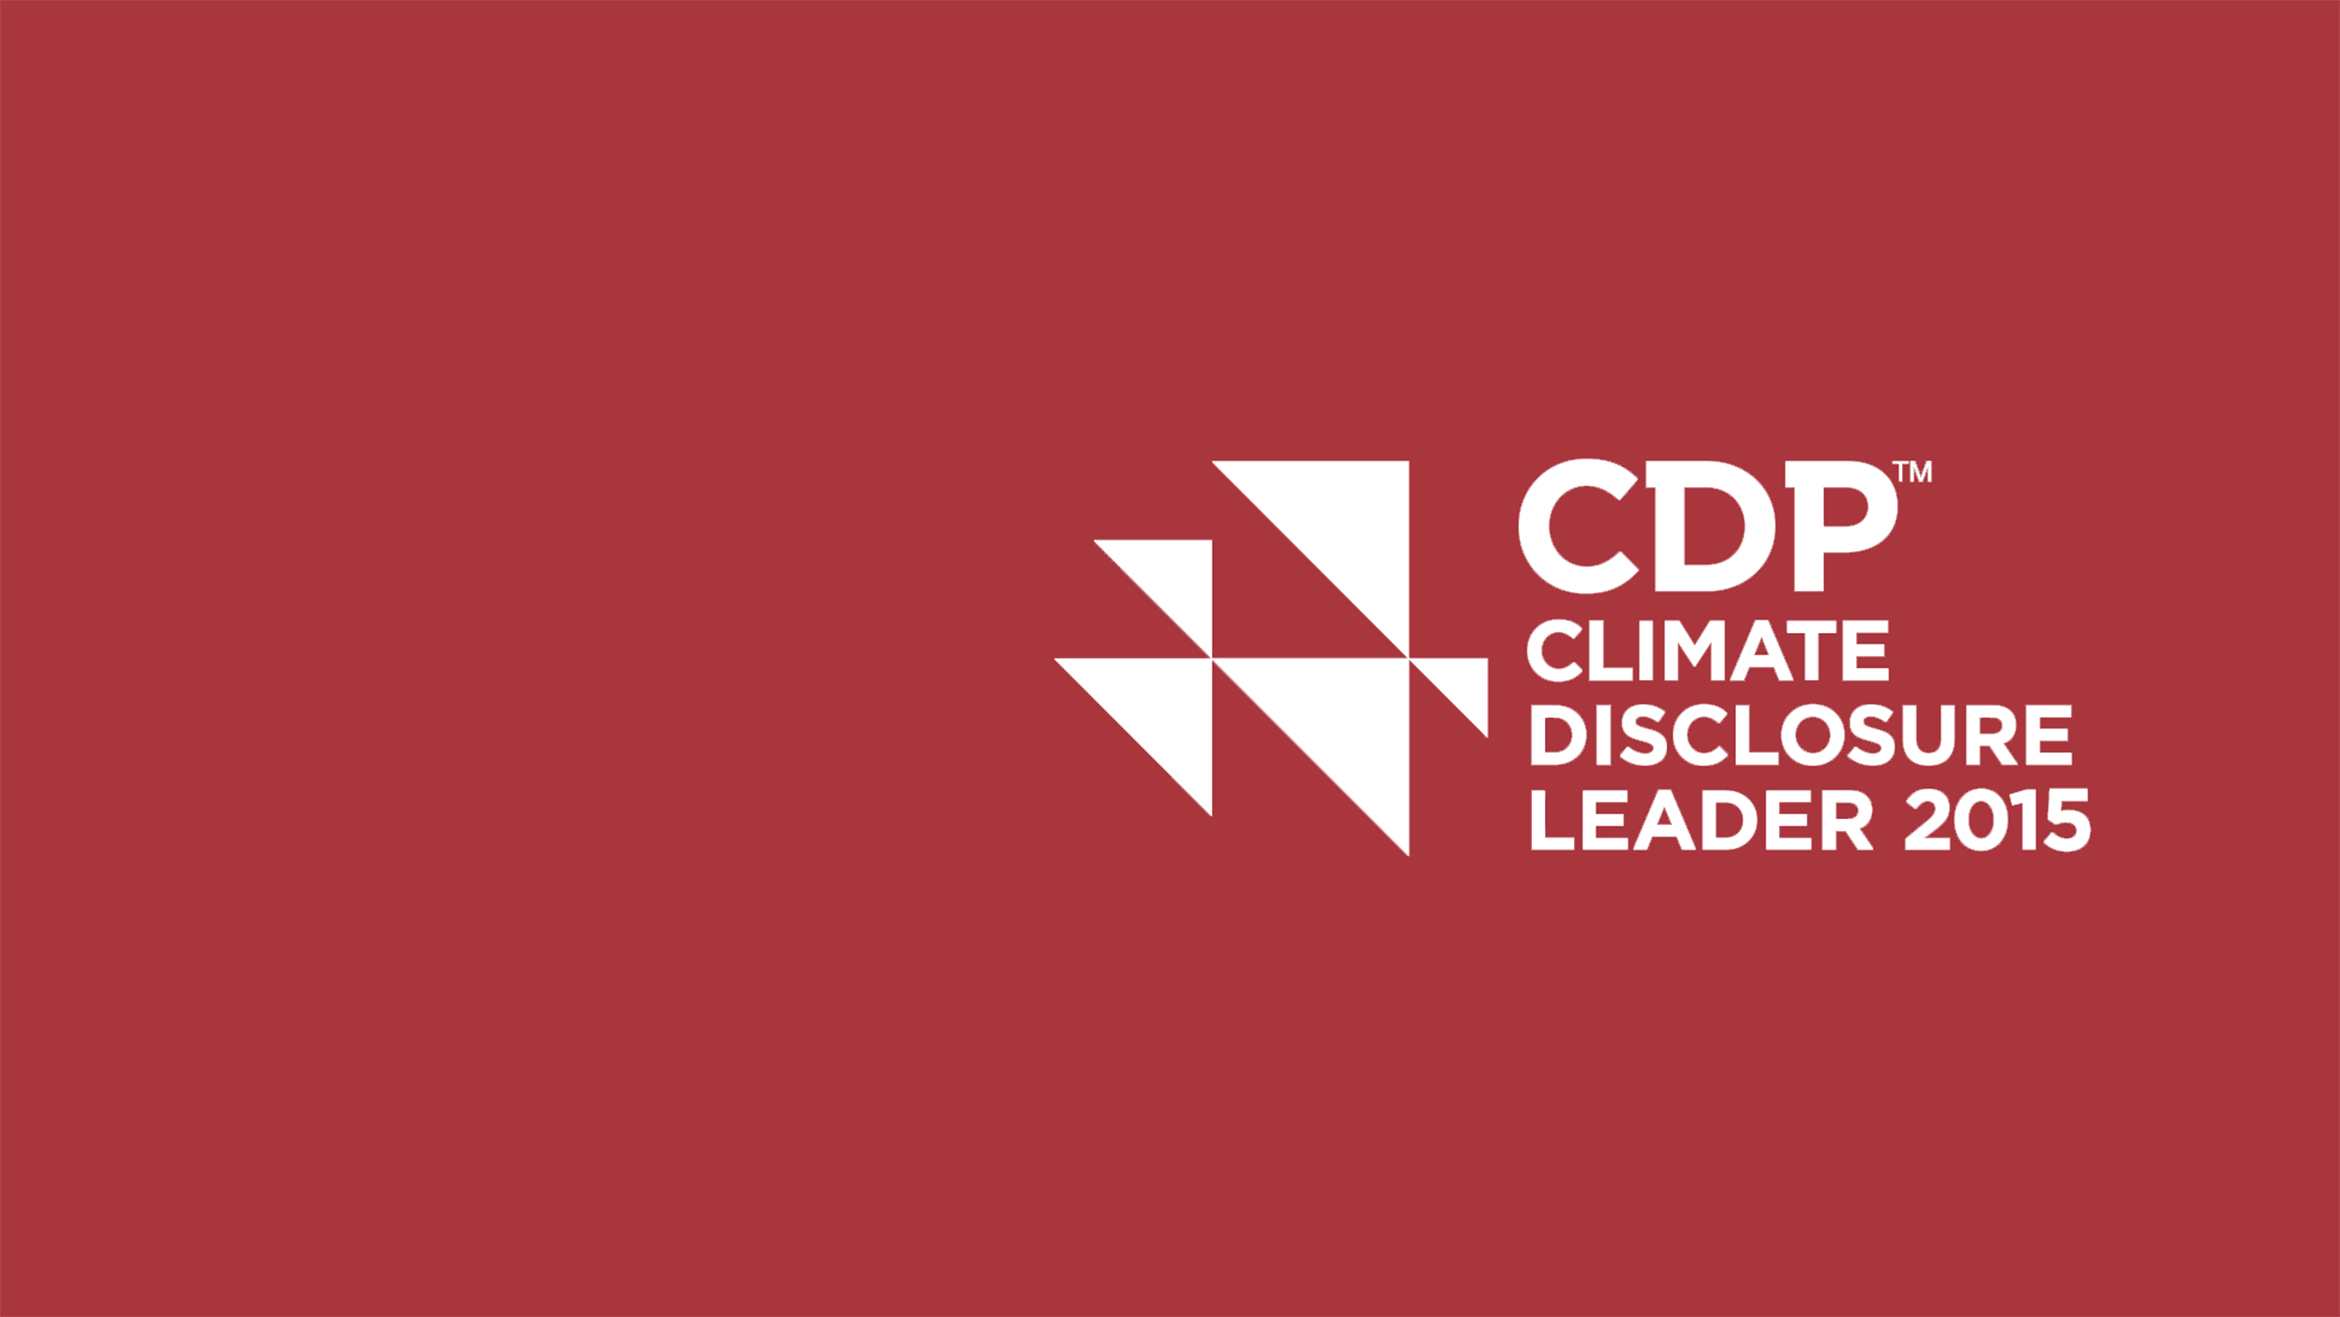 CDP climate dislosure leader 2015